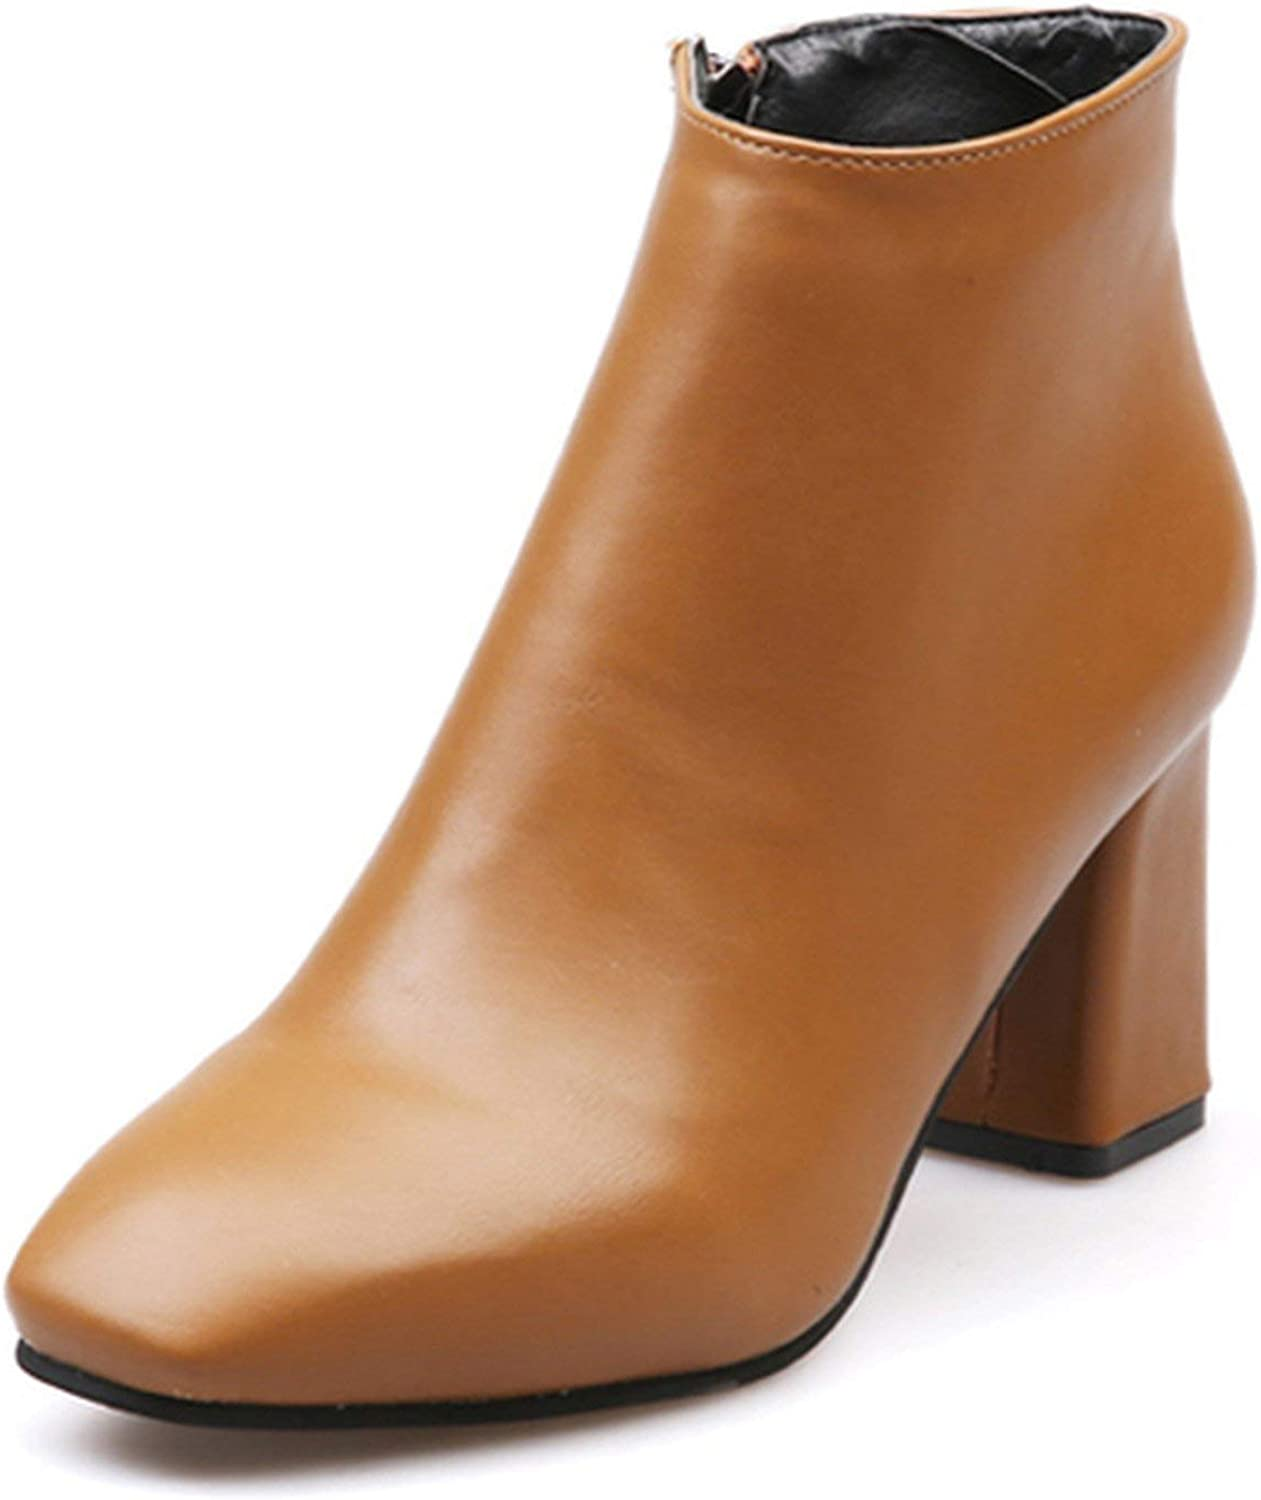 Summer-lavender Spring Autumn Chelsea Boots Women Rubber Sole High Heels Ankle Boots Leather shoes